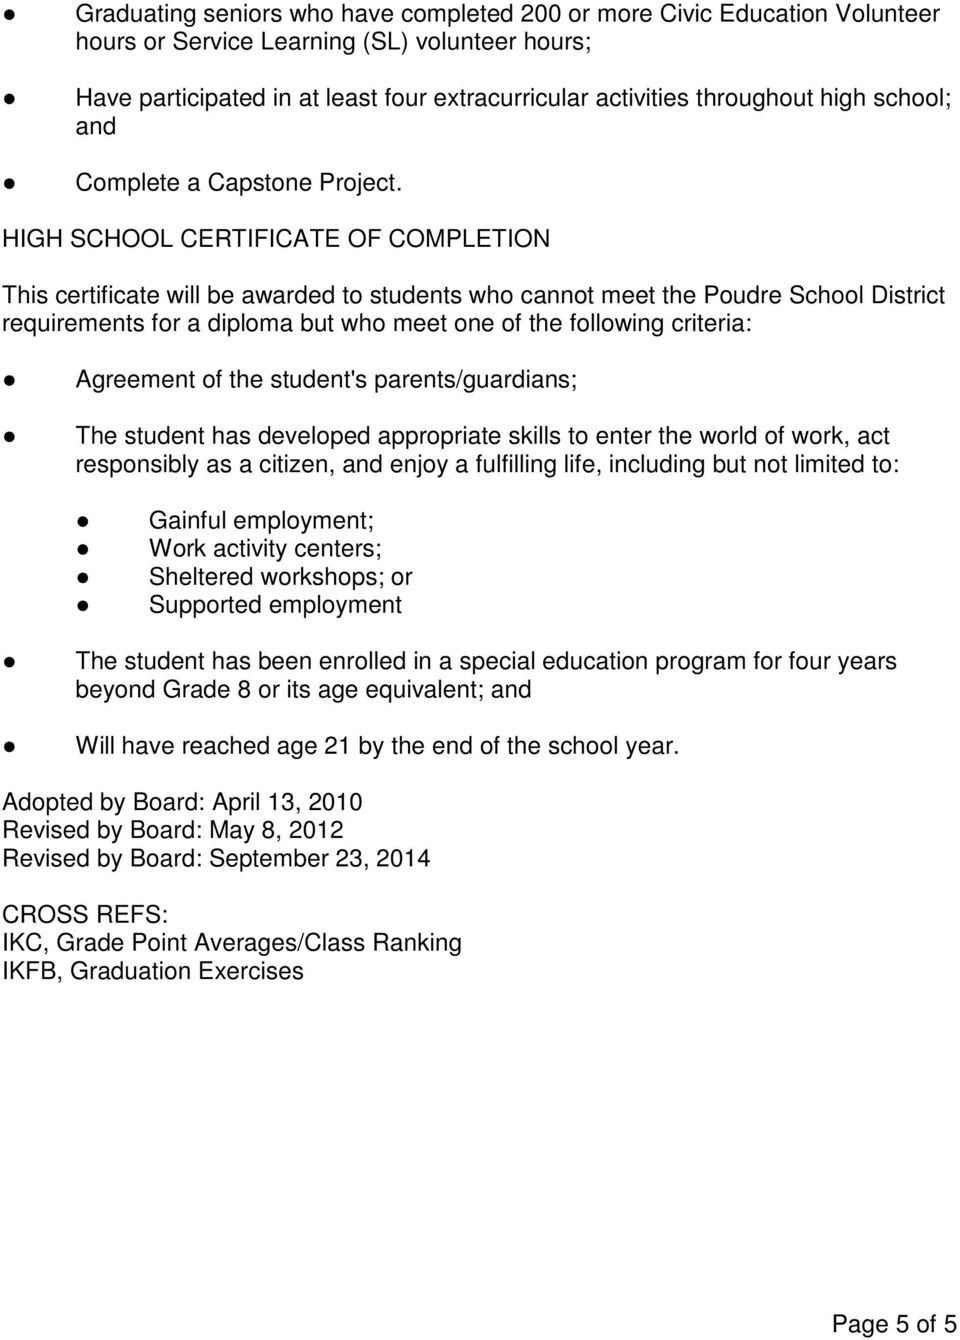 HIGH SCHOOL CERTIFICATE OF COMPLETION This certificate will be awarded to students who cannot meet the Poudre School District requirements for a diploma but who meet one of the following criteria: